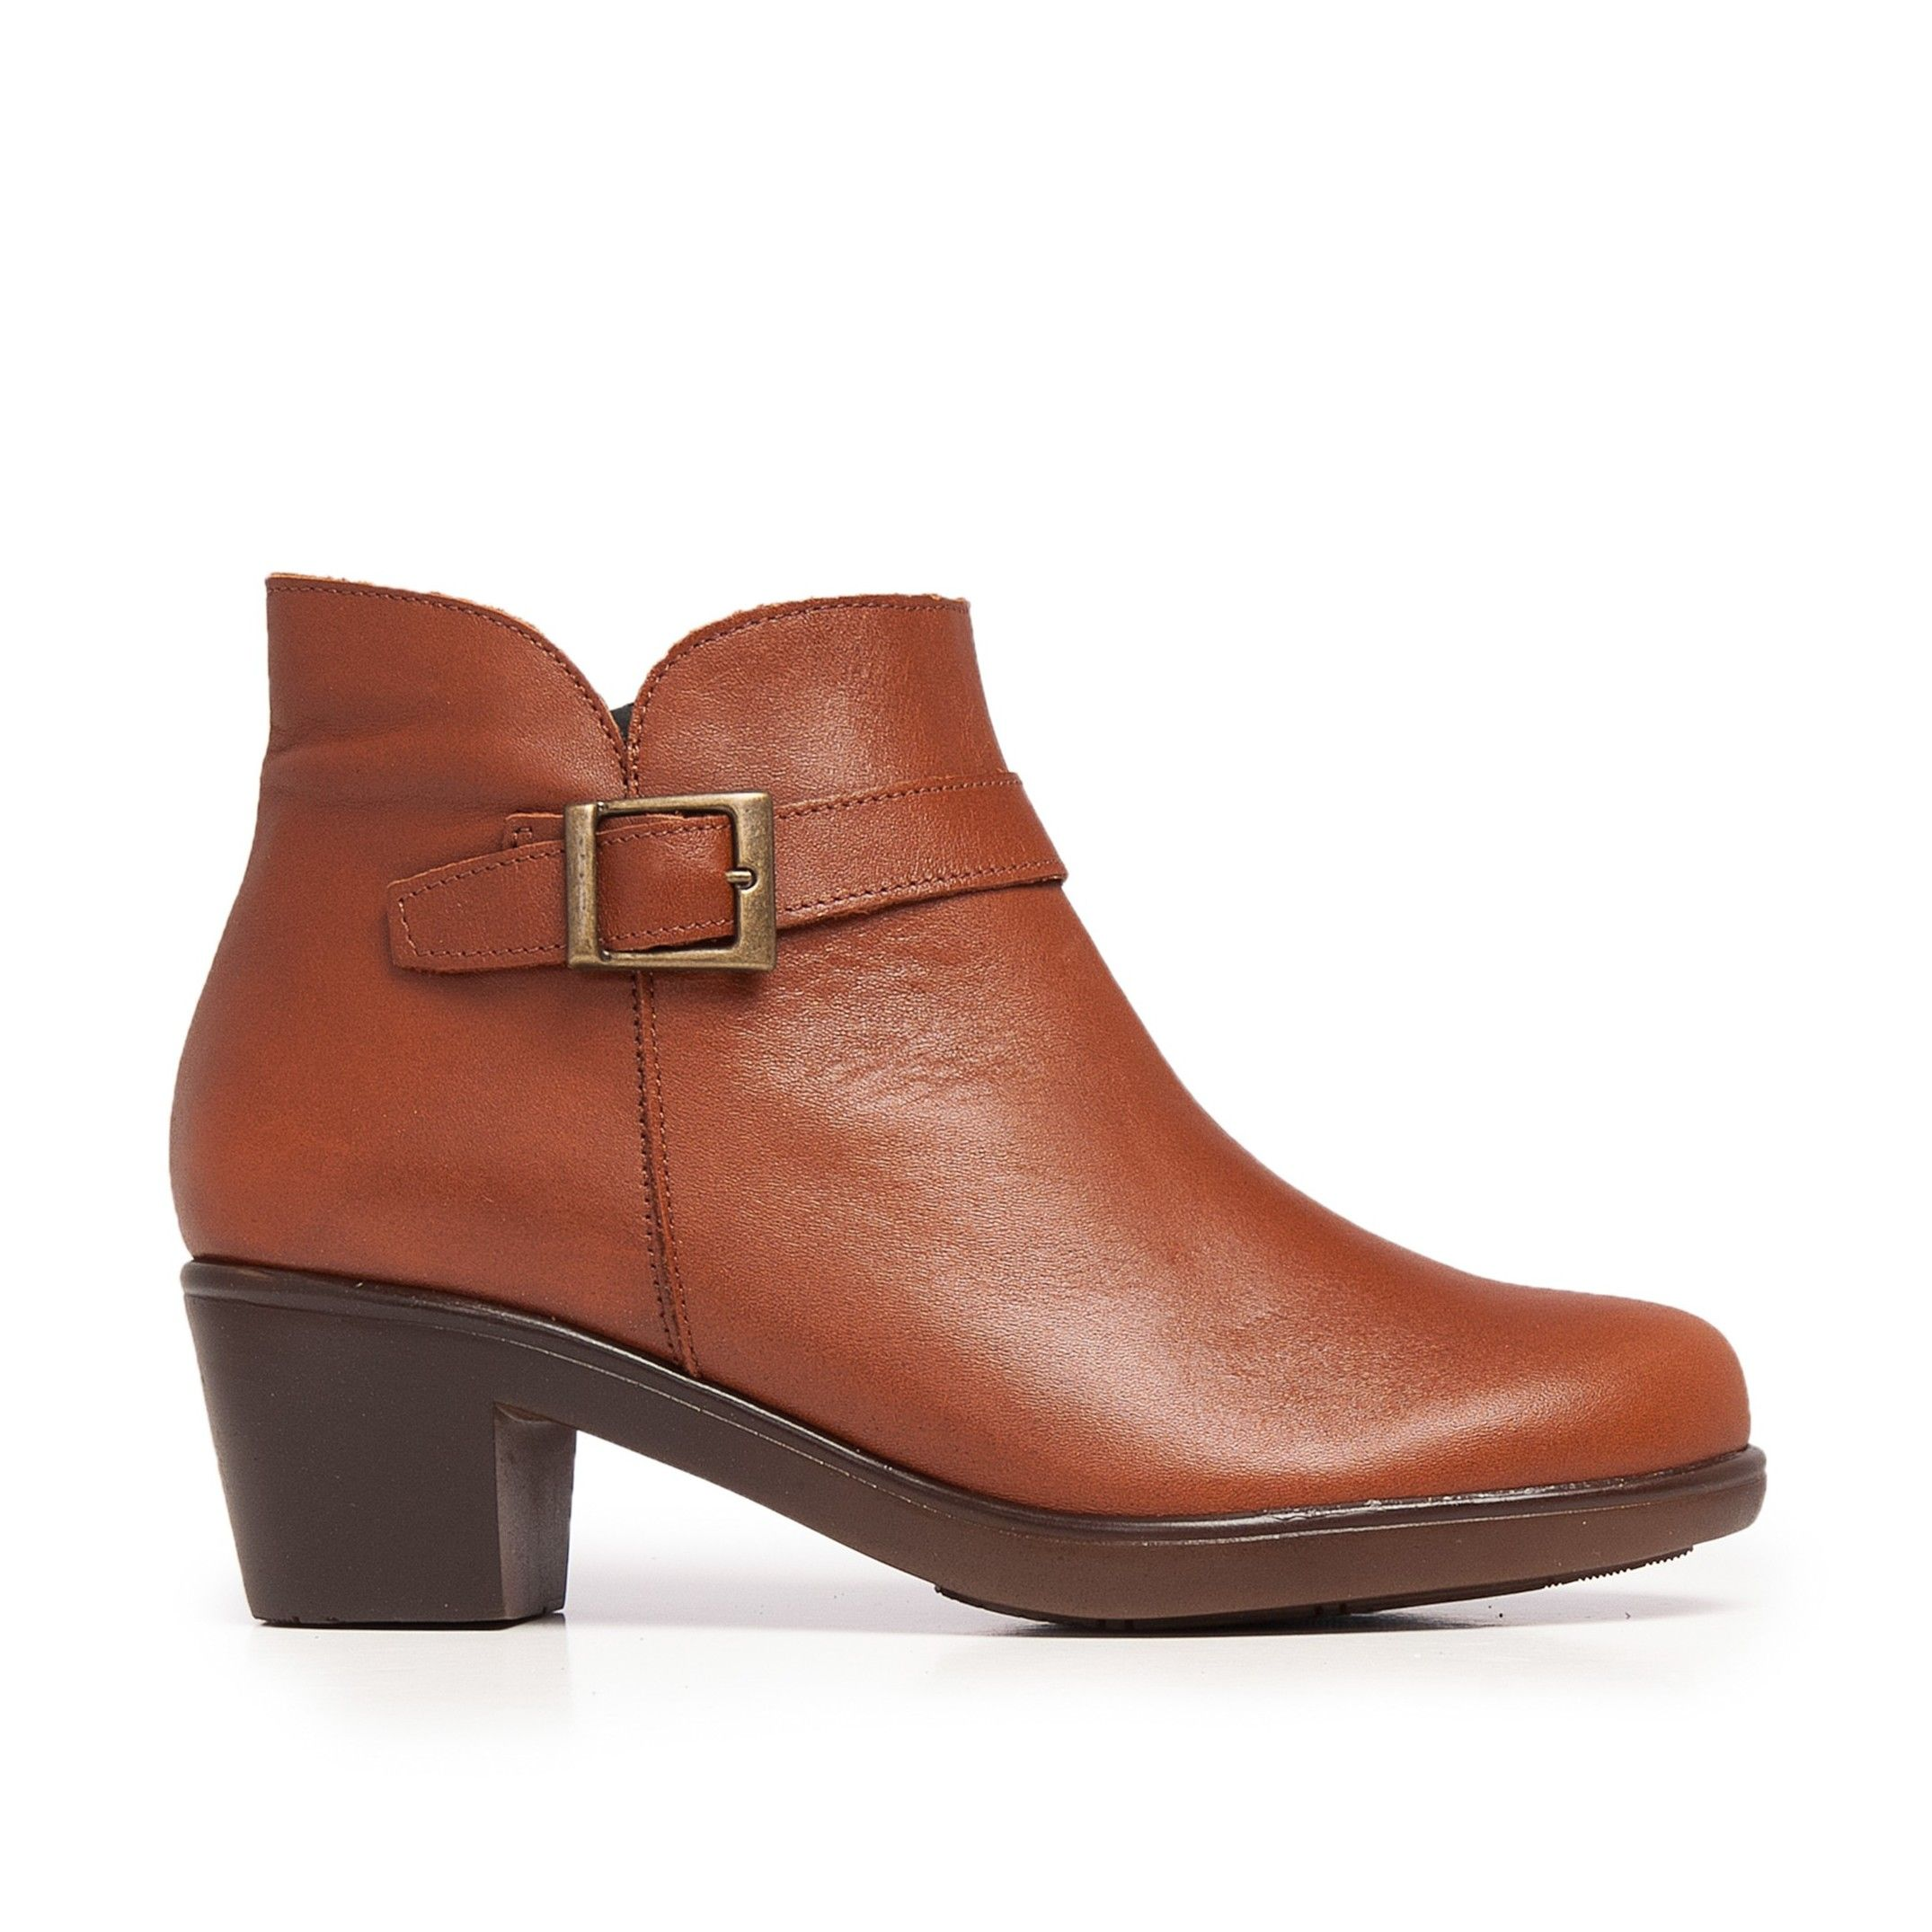 Castellanisimos Leather Ankle Cuir Boot Women Winter Shoes